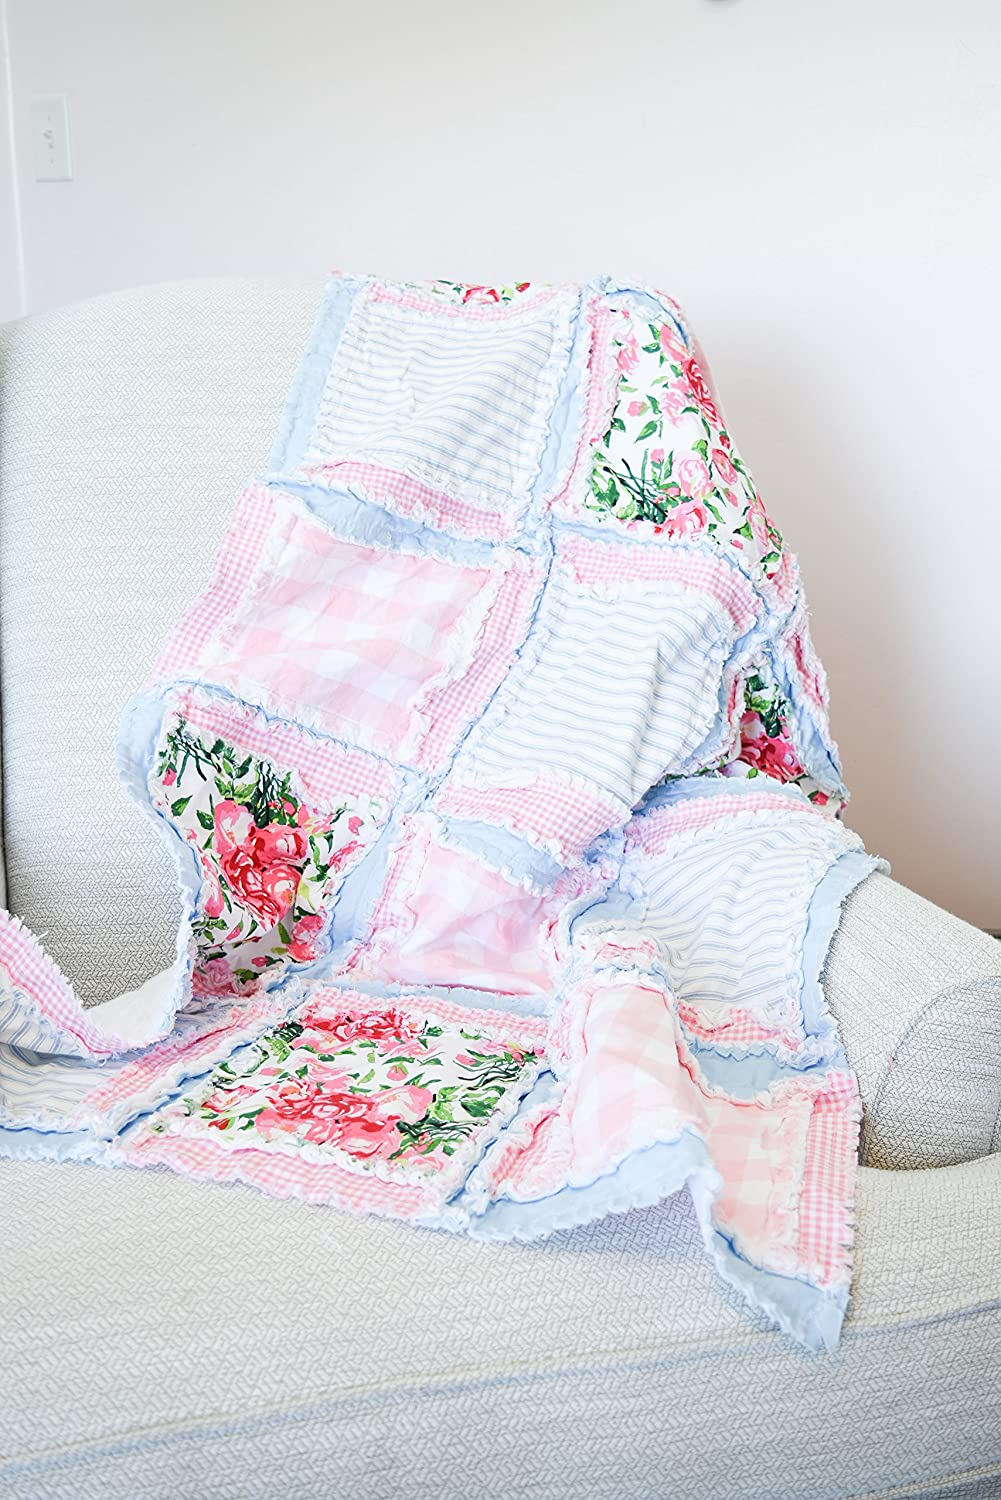 Image of Floral Baby Girl Crib Quilt - Light PInk/Pastel Blue - QUILT ONLY Home and Kitchen